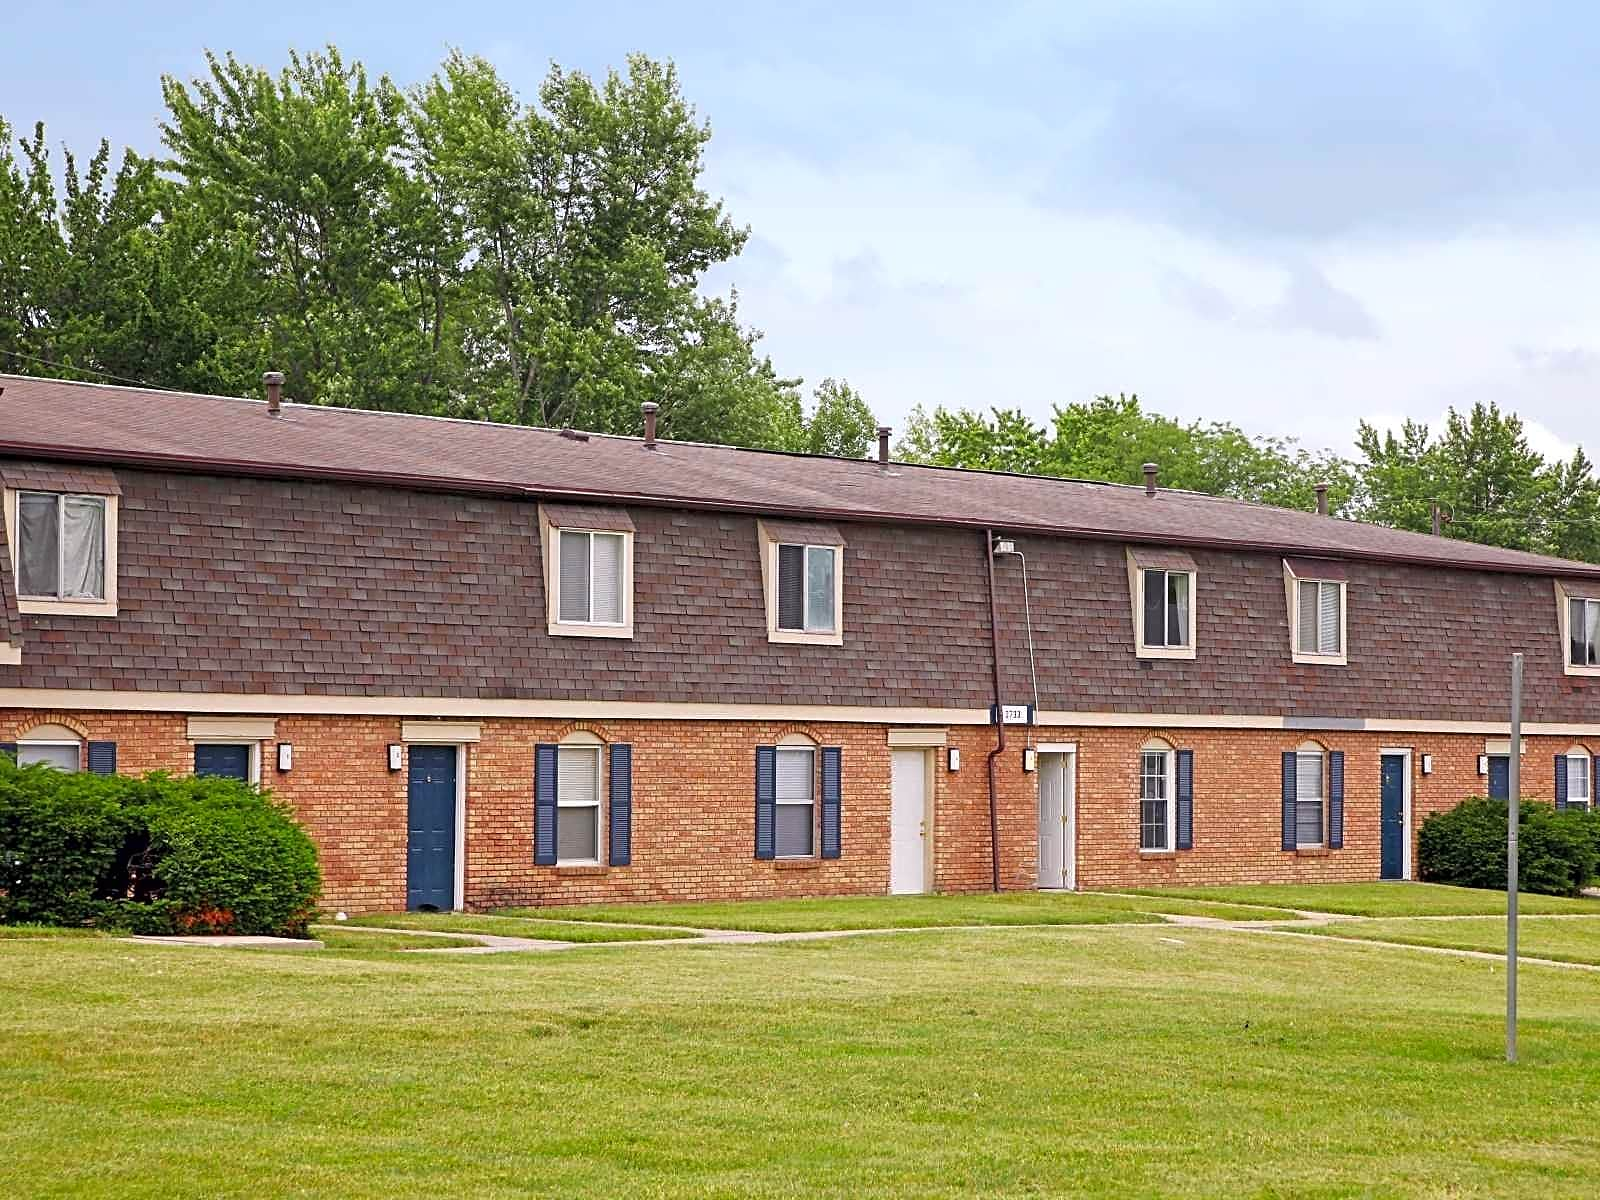 Photo: Fort Wayne Apartment for Rent - $619.00 / month; 3 Bd & 1 Ba